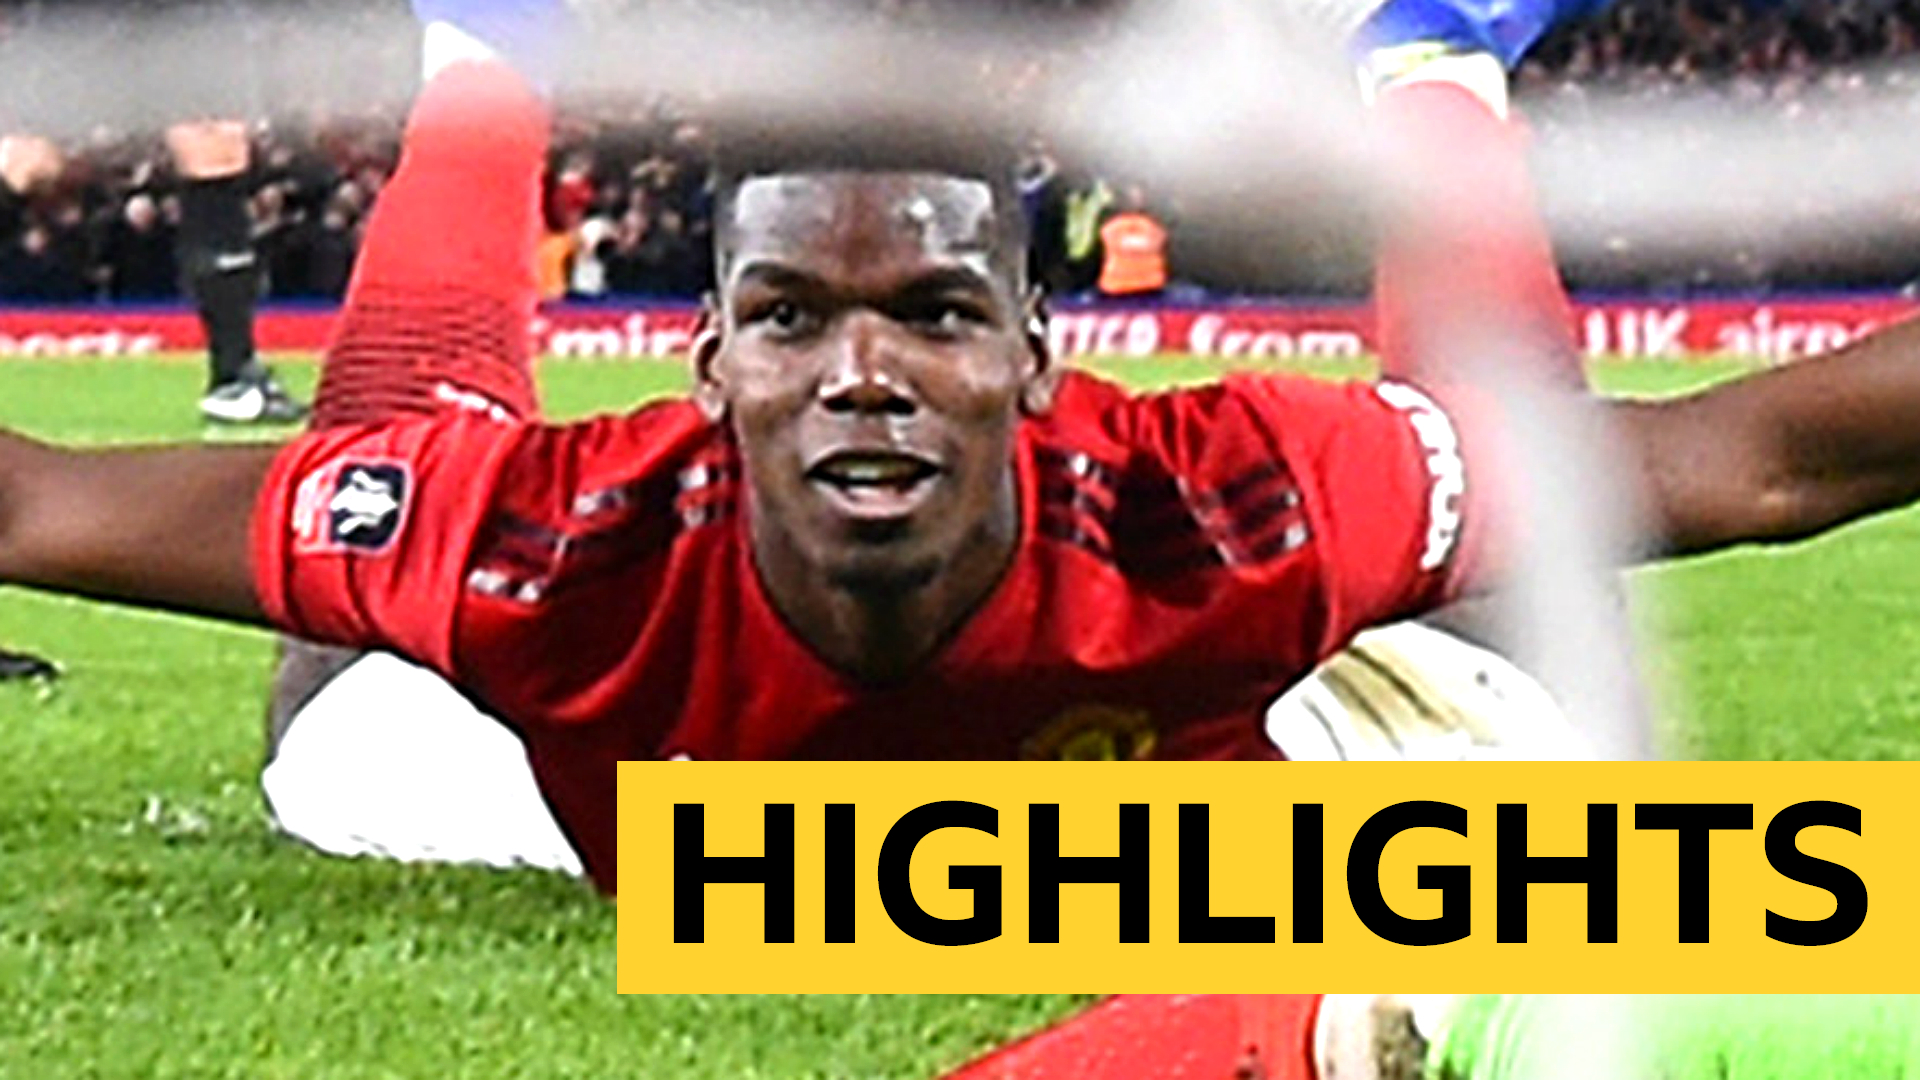 FA Cup: Chelsea 0-2 Manchester United highlights